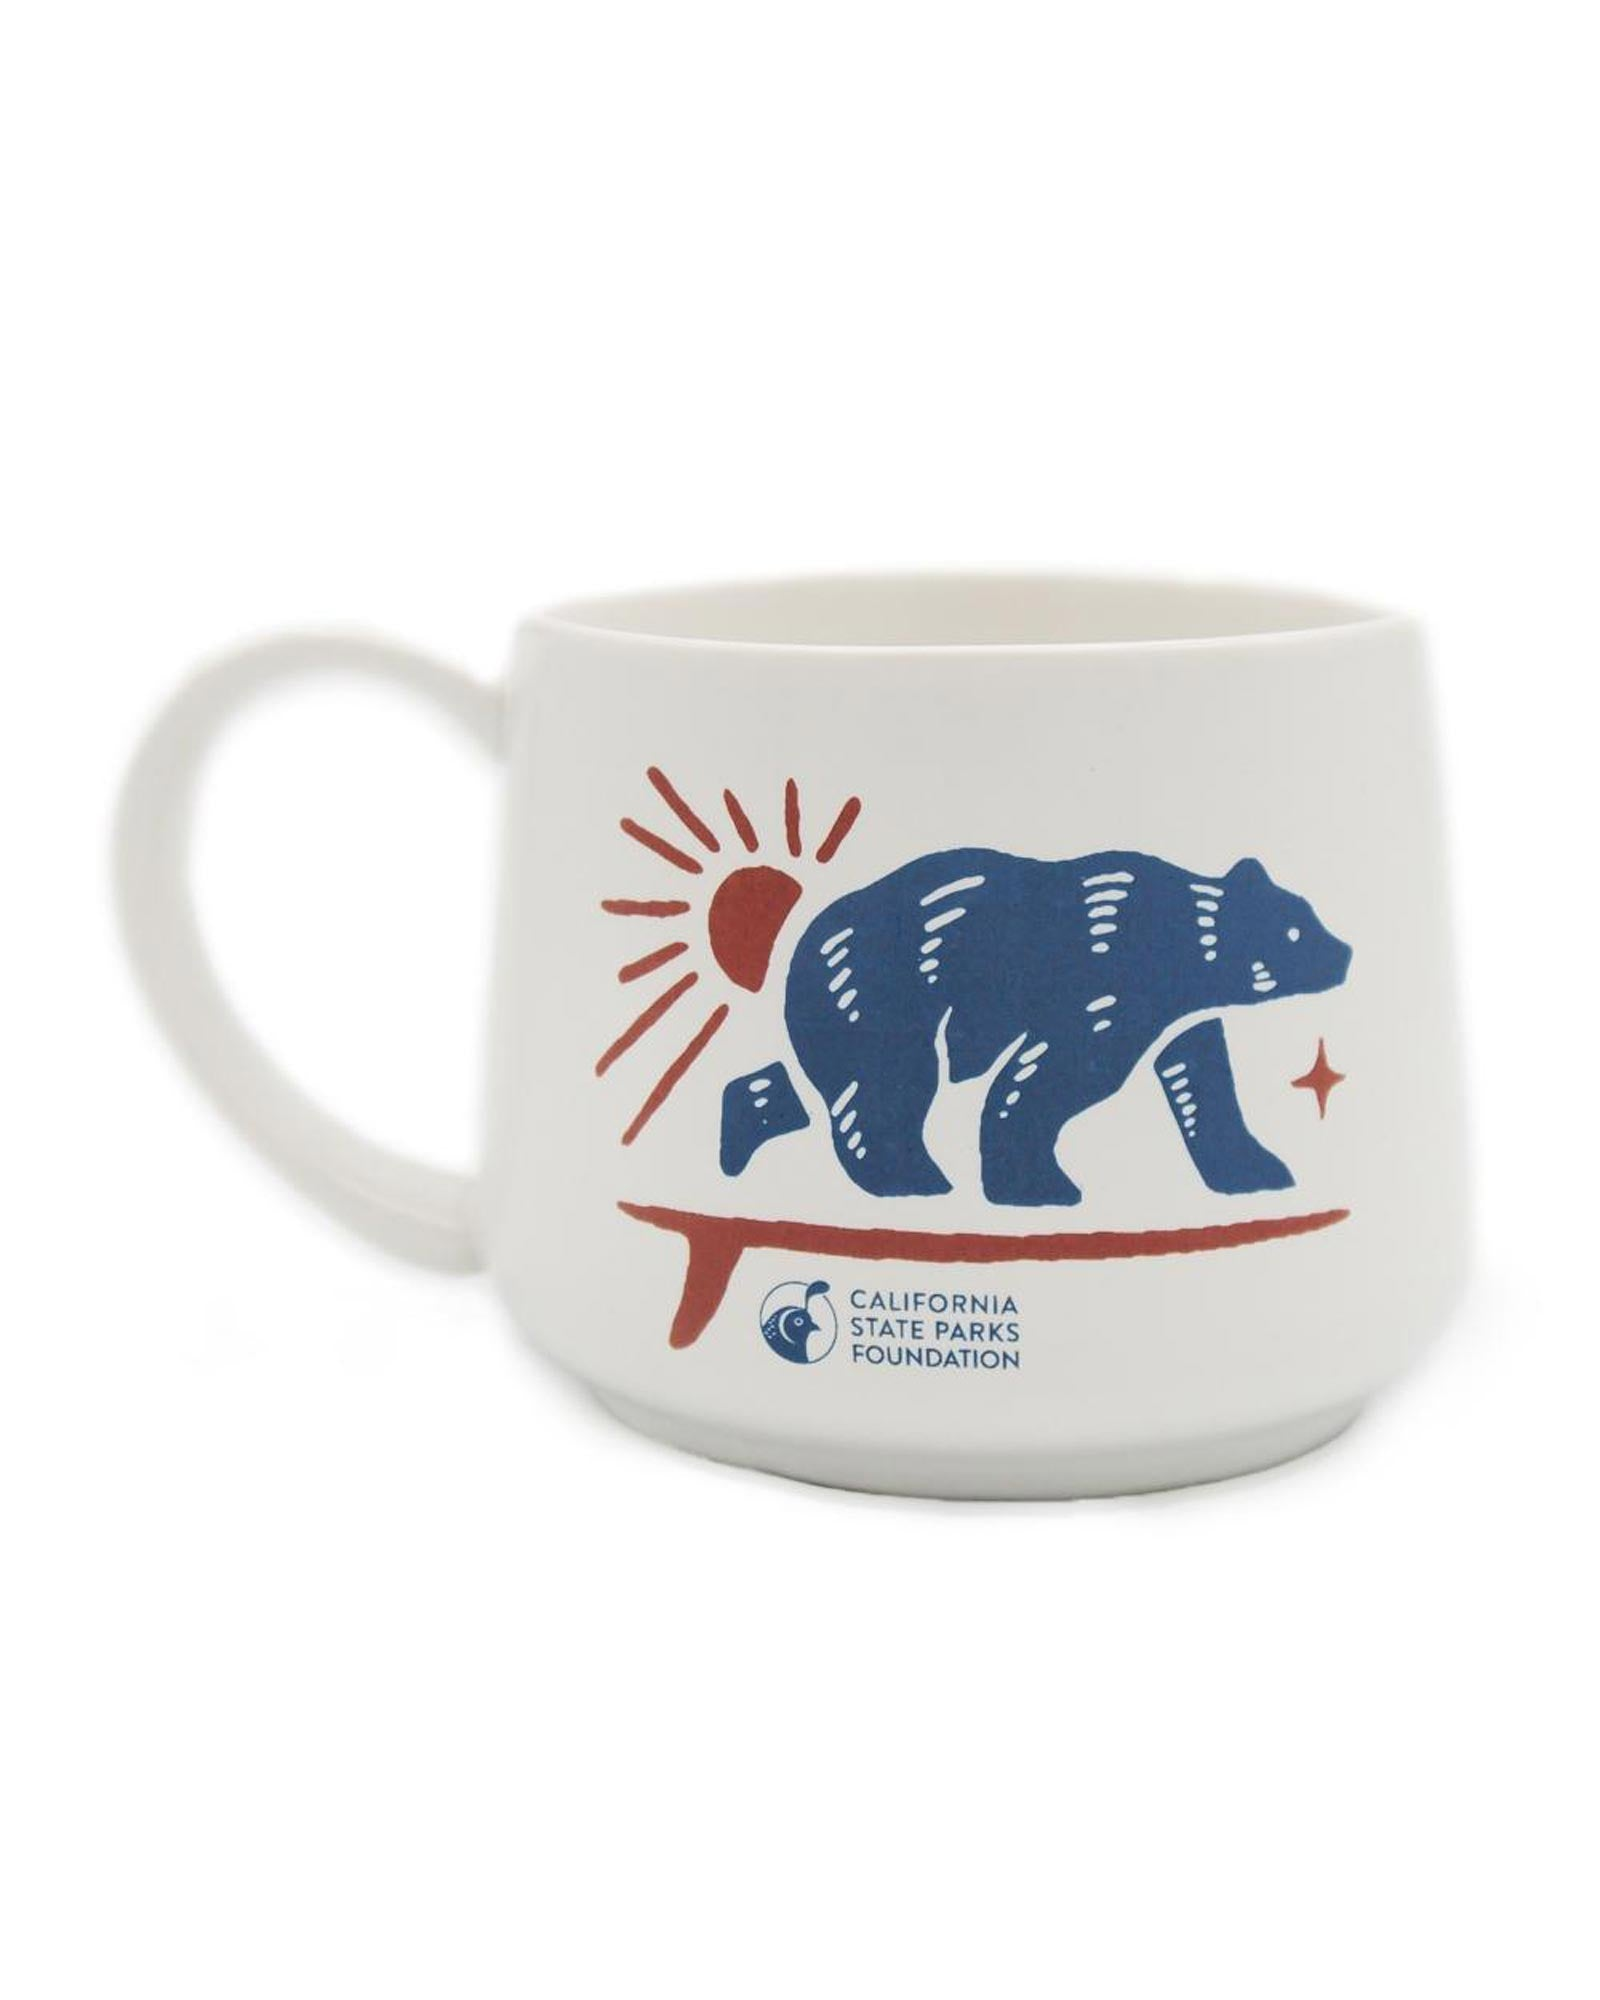 State Parks of California Ceramic Mug | Parks Project | State Parks of California Accessories